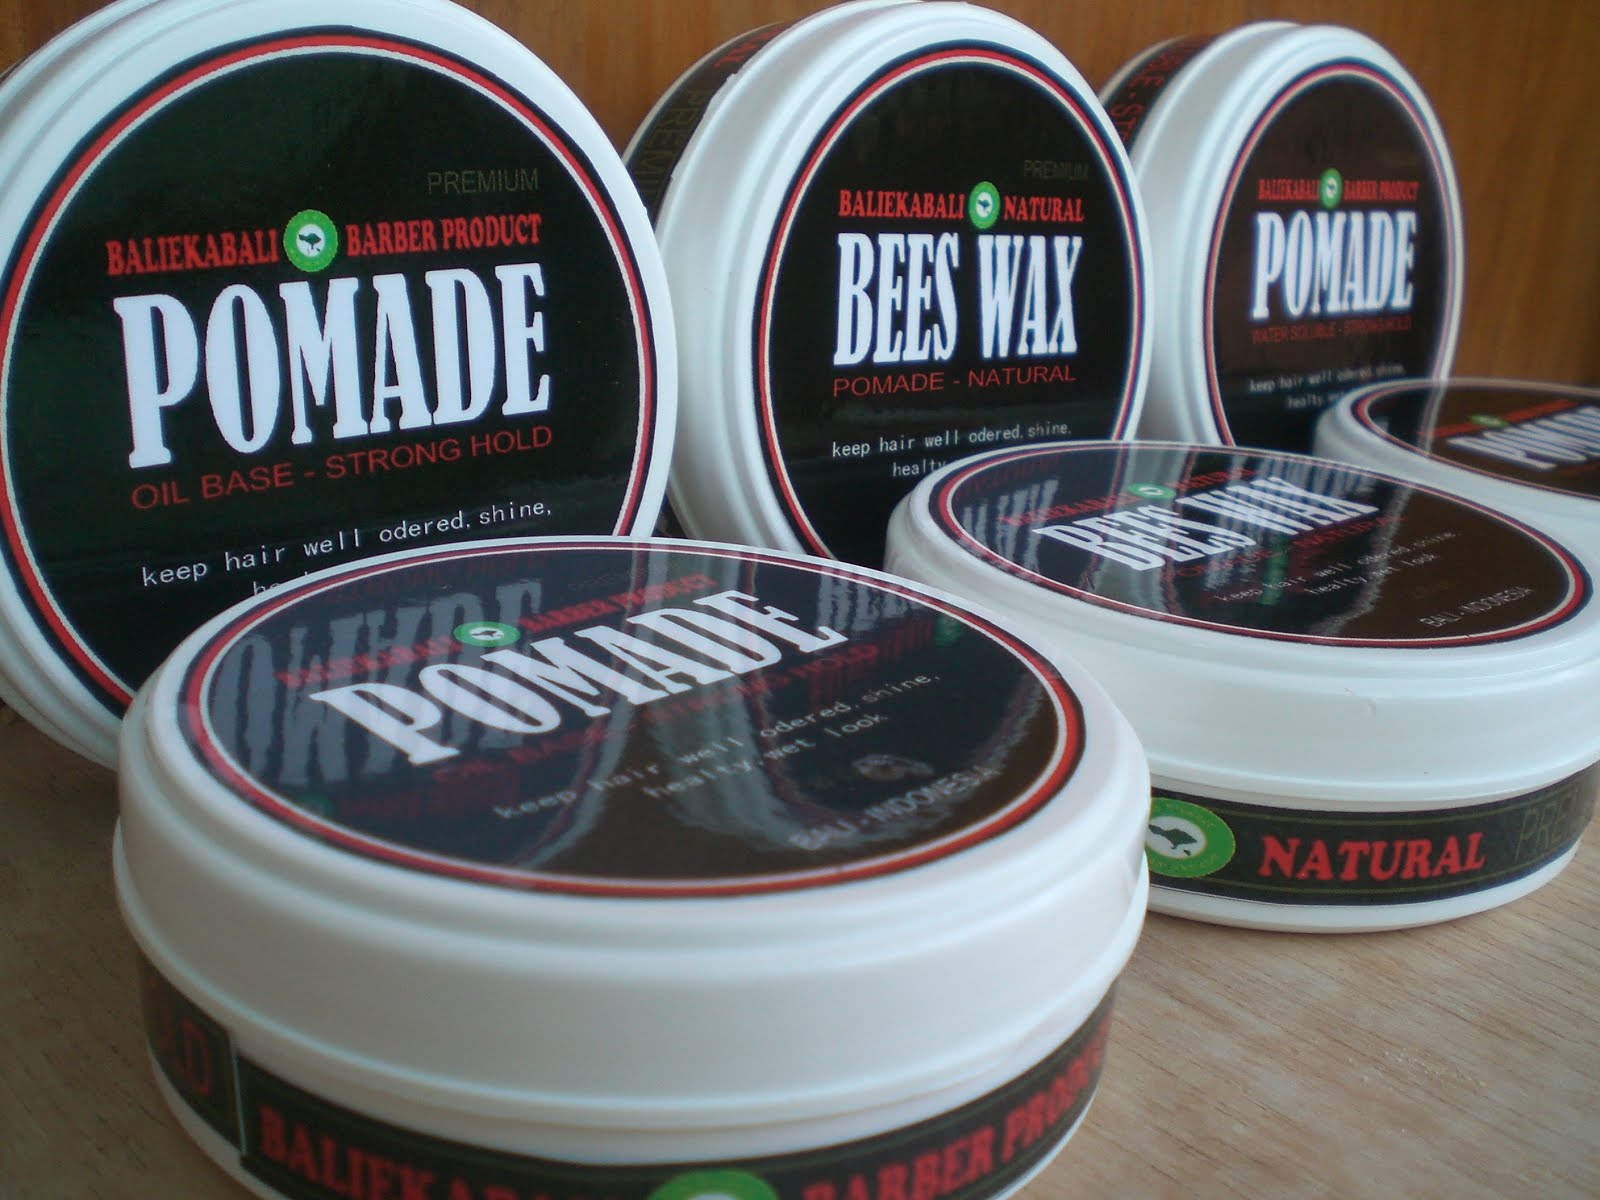 POMADE BARBER MEN HAIR PRODUCT IN BALI